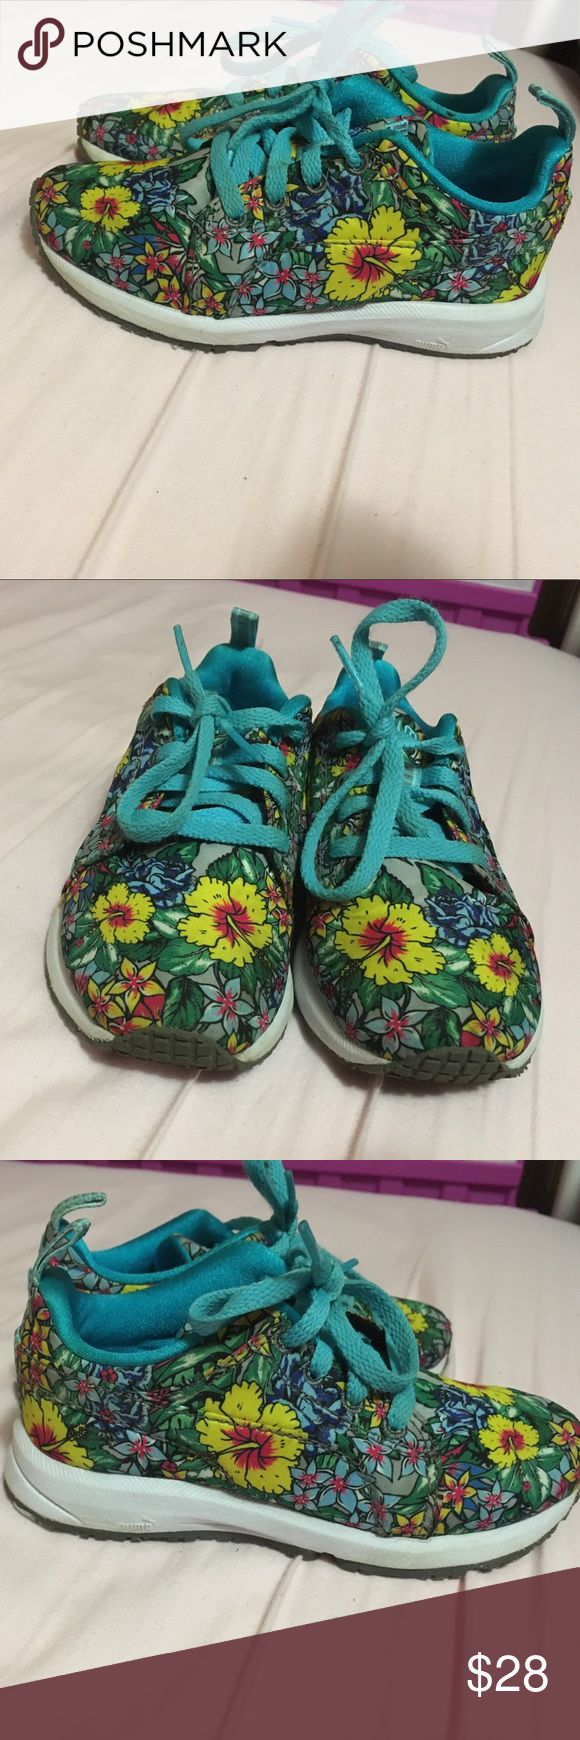 Puma girls size 11 shoes Excellent condition. Floral print. Worn twice. Size 11.      Girls. Shoes. Sneakers. Puma. Toddler. Puma Shoes Sneakers